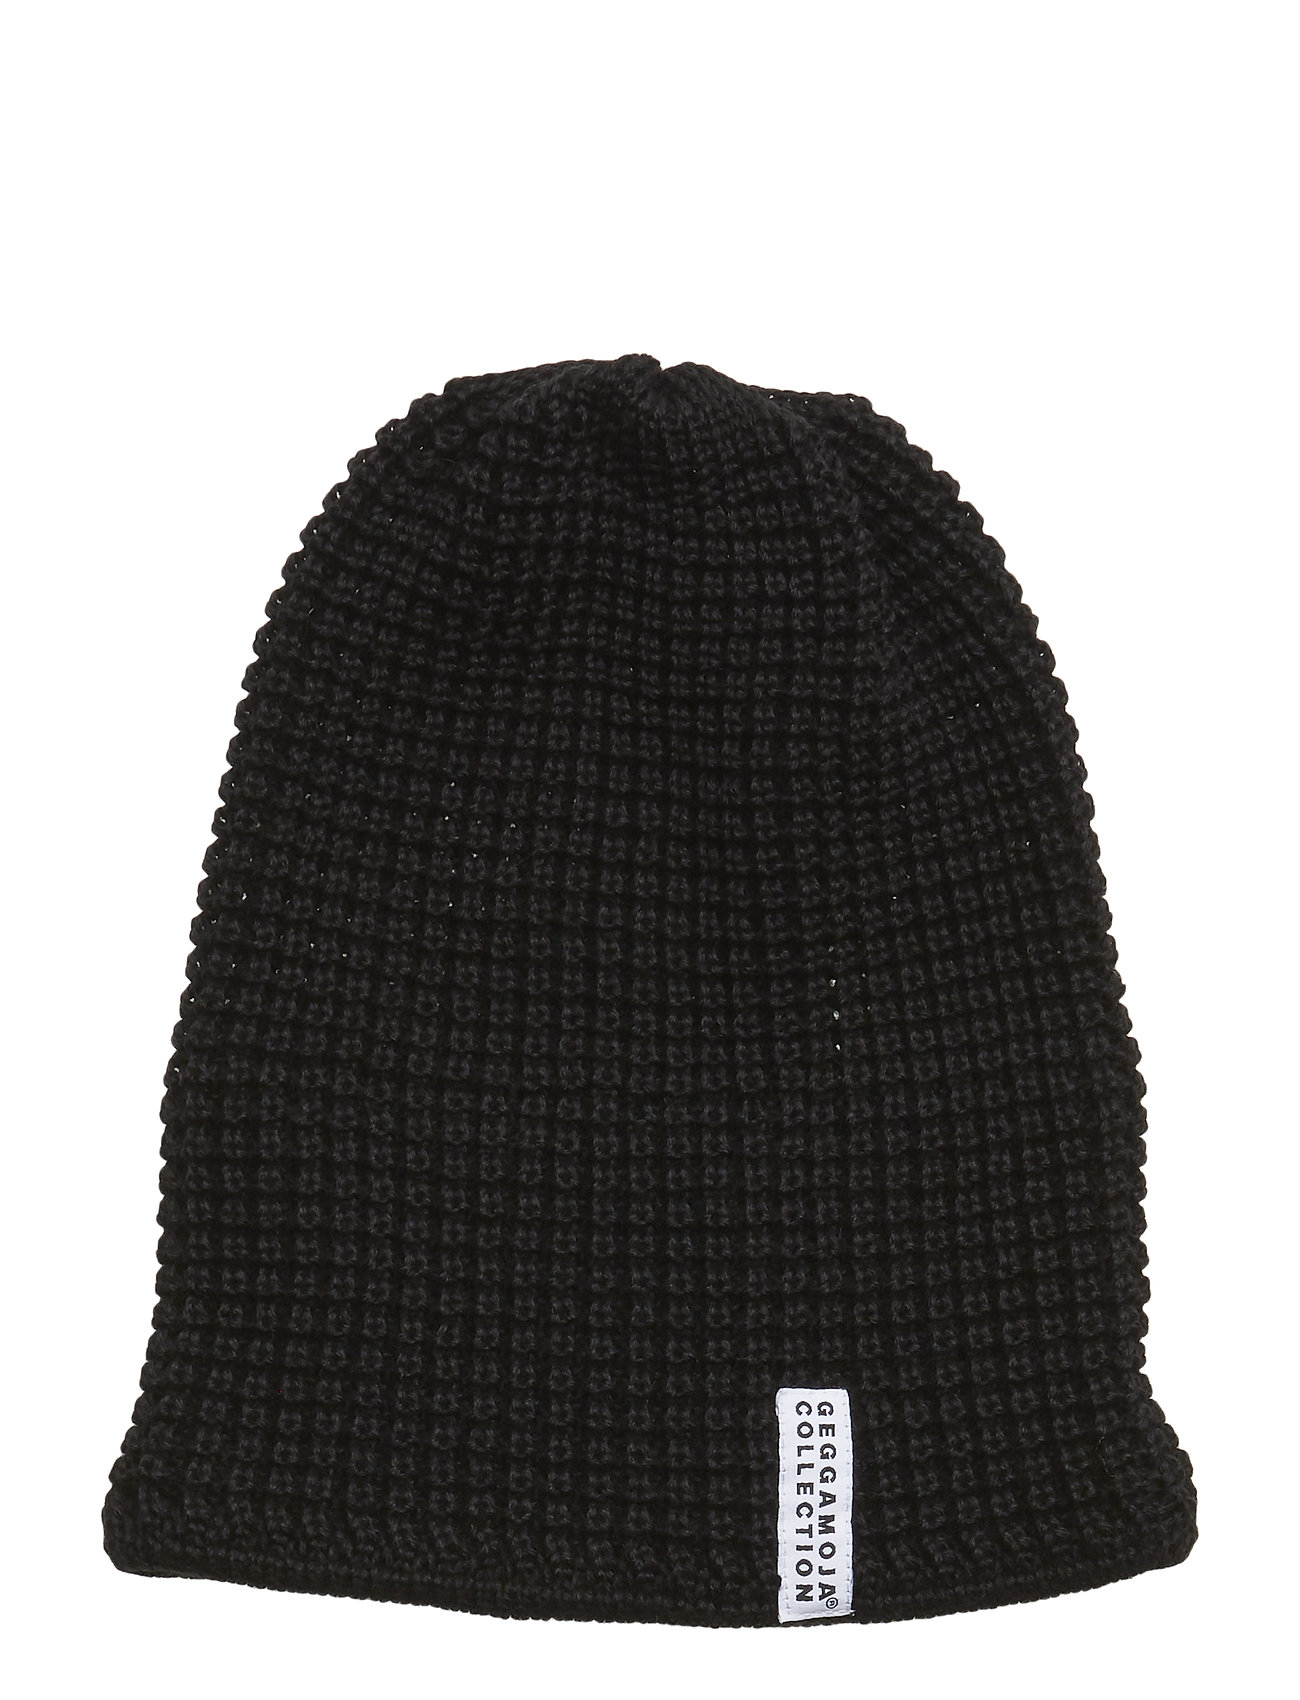 Image of Knitted Beanie Hat Sort GEGGAMOJA (3075041333)